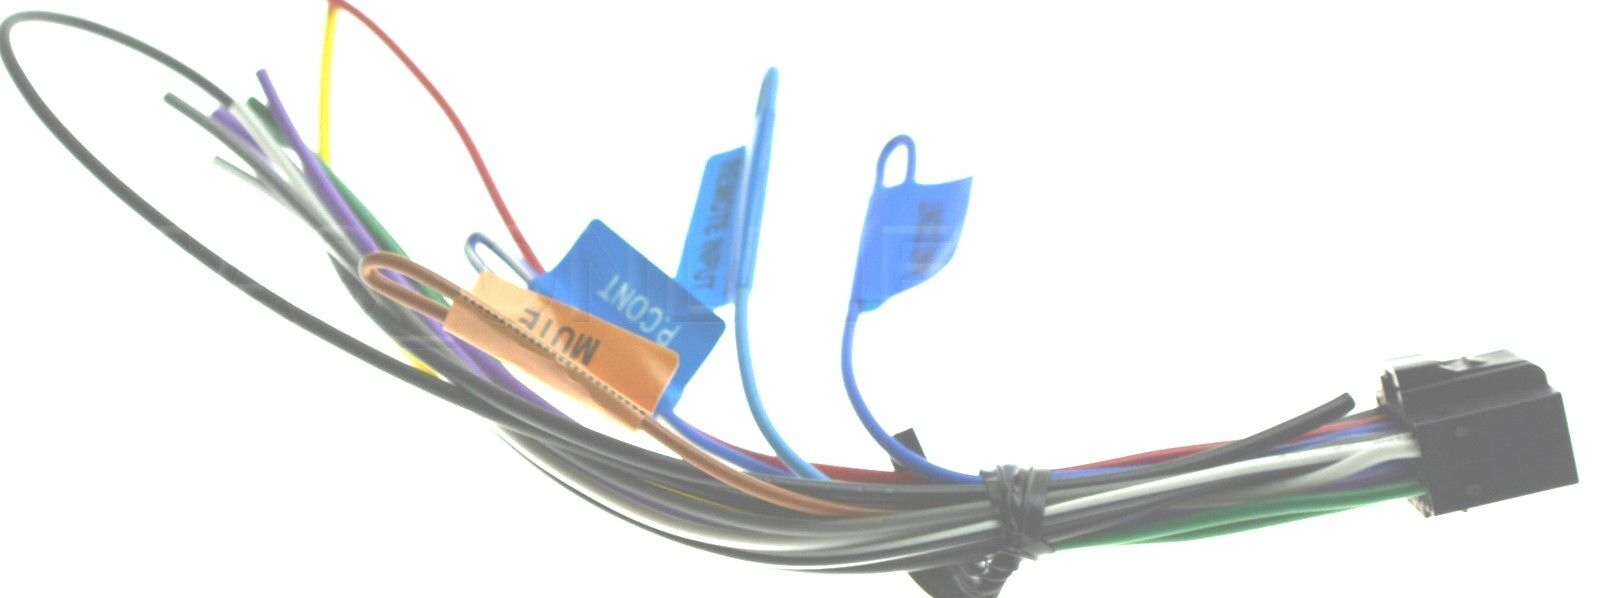 Kenwood Kdc Bt310u Kdcbt310u Genuine Wire Harness Pay Today Ships X797 Car Stereo Wiring Diagram 1 Of 4free Shipping 2 4